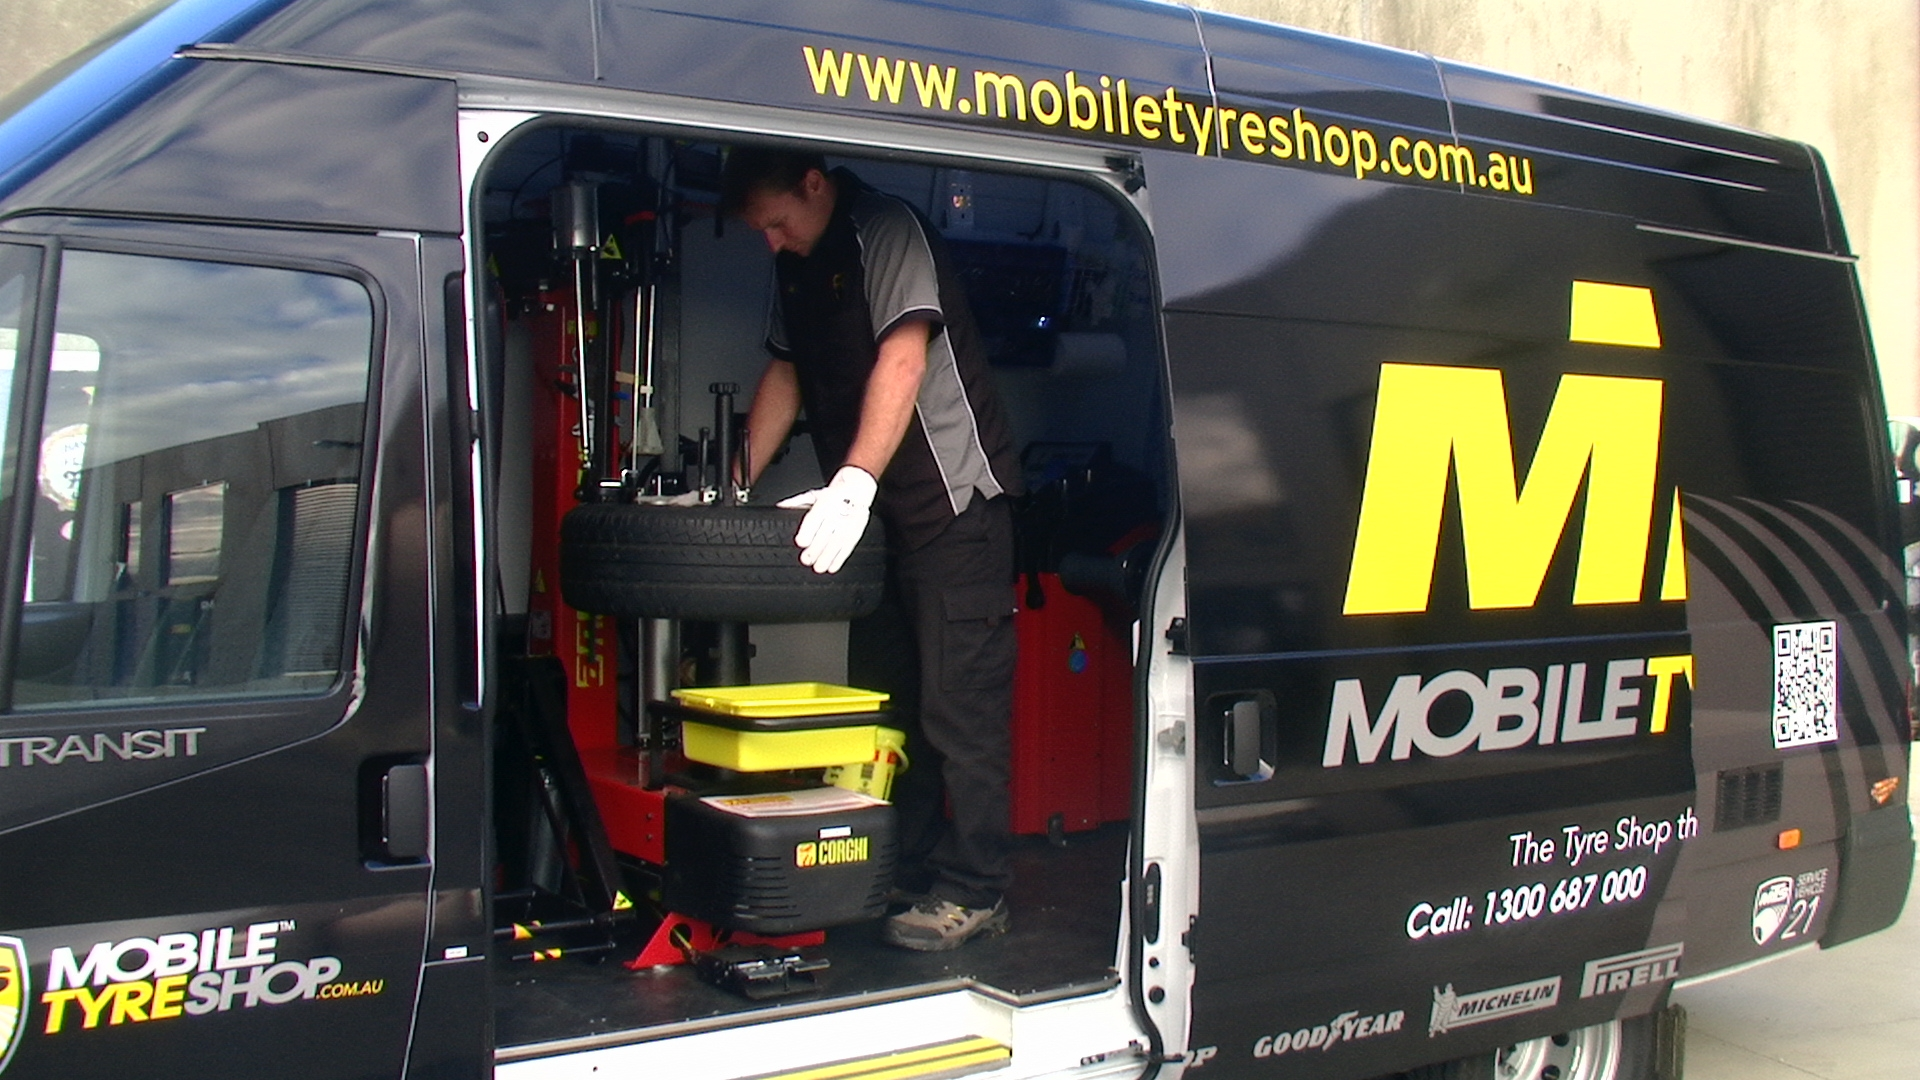 Award Winning Mobile Tyre Shop Reveals Convenience As Its Usp